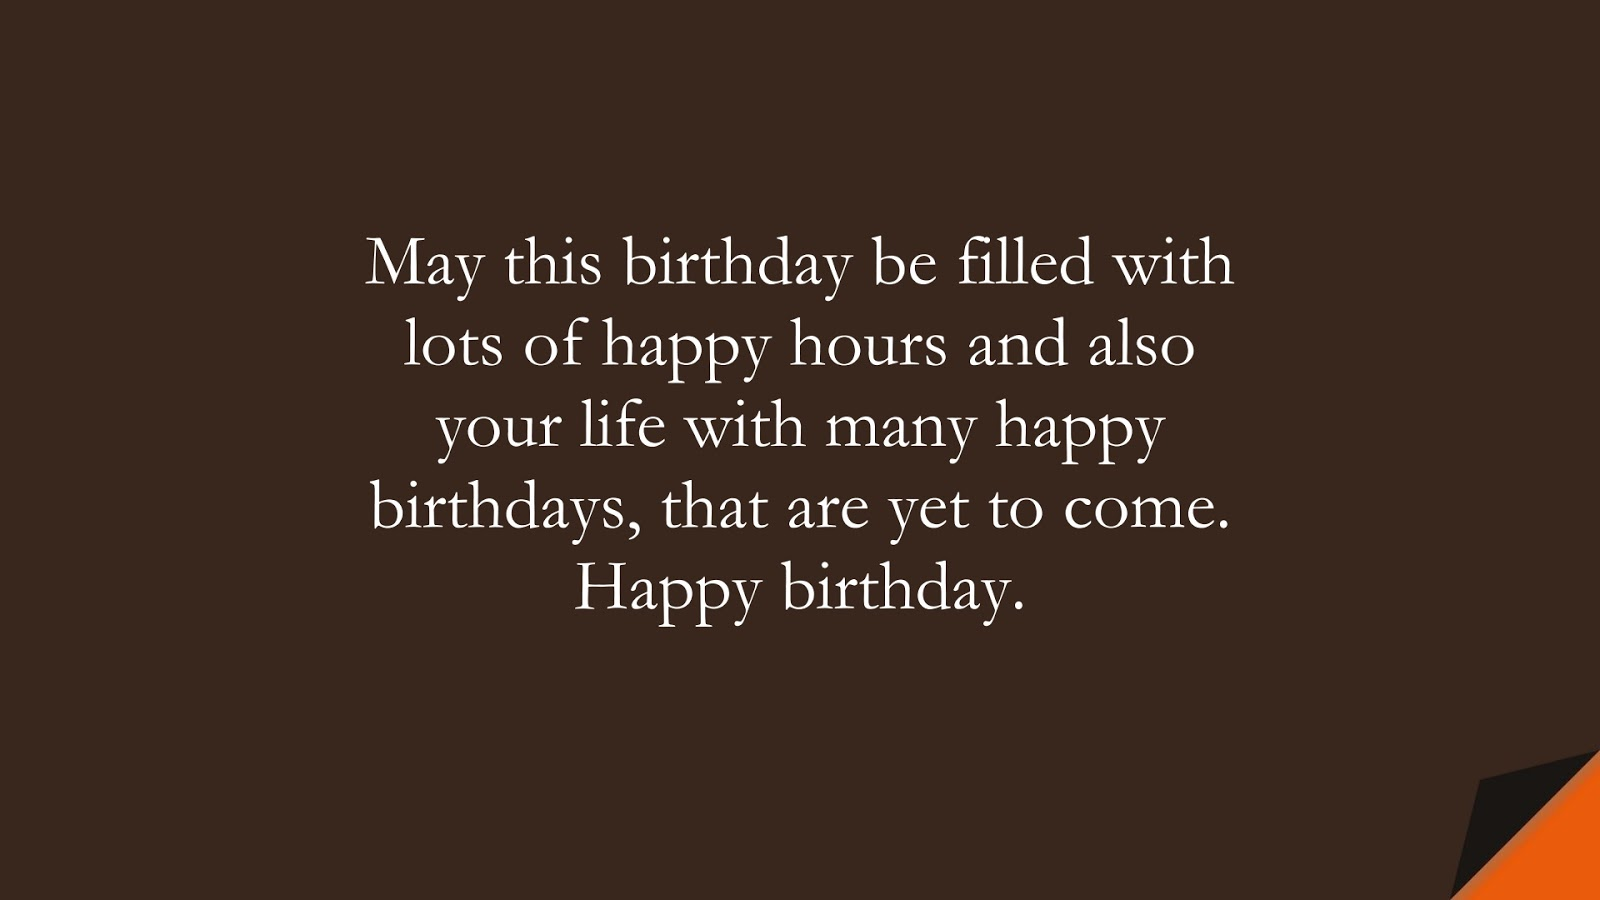 May this birthday be filled with lots of happy hours and also your life with many happy birthdays, that are yet to come. Happy birthday.FALSE